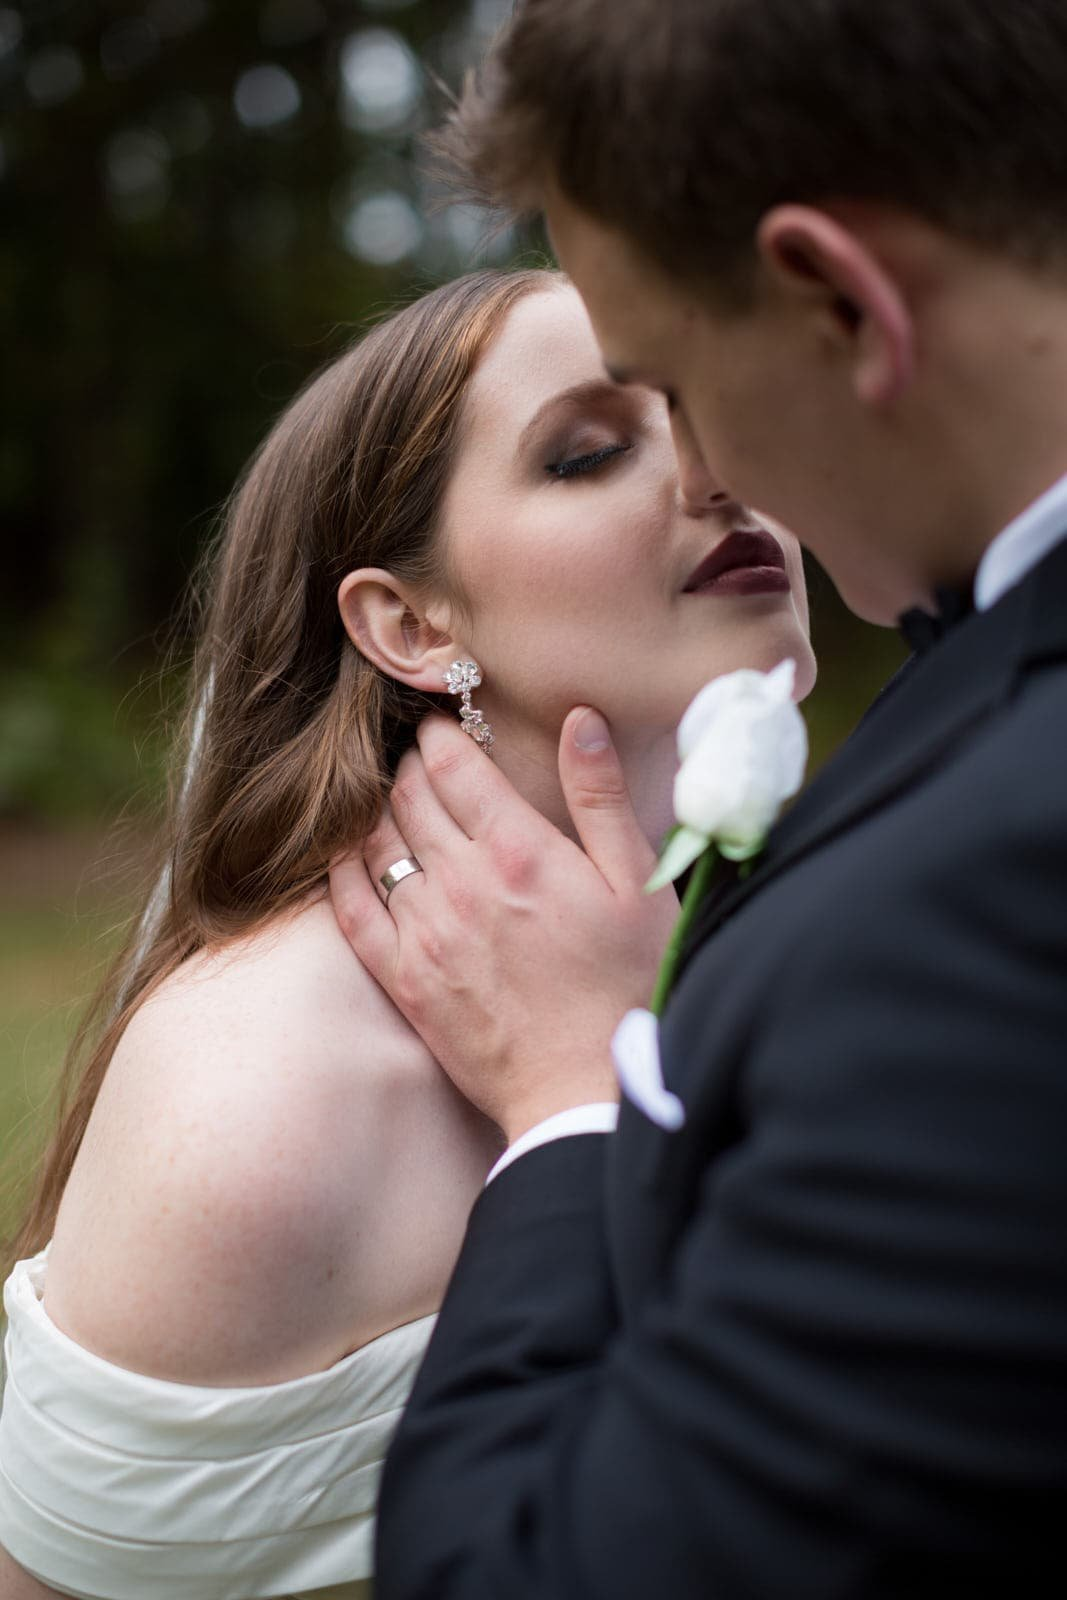 Atlanta Wedding bridal kissing portrait by Mike Glatzer